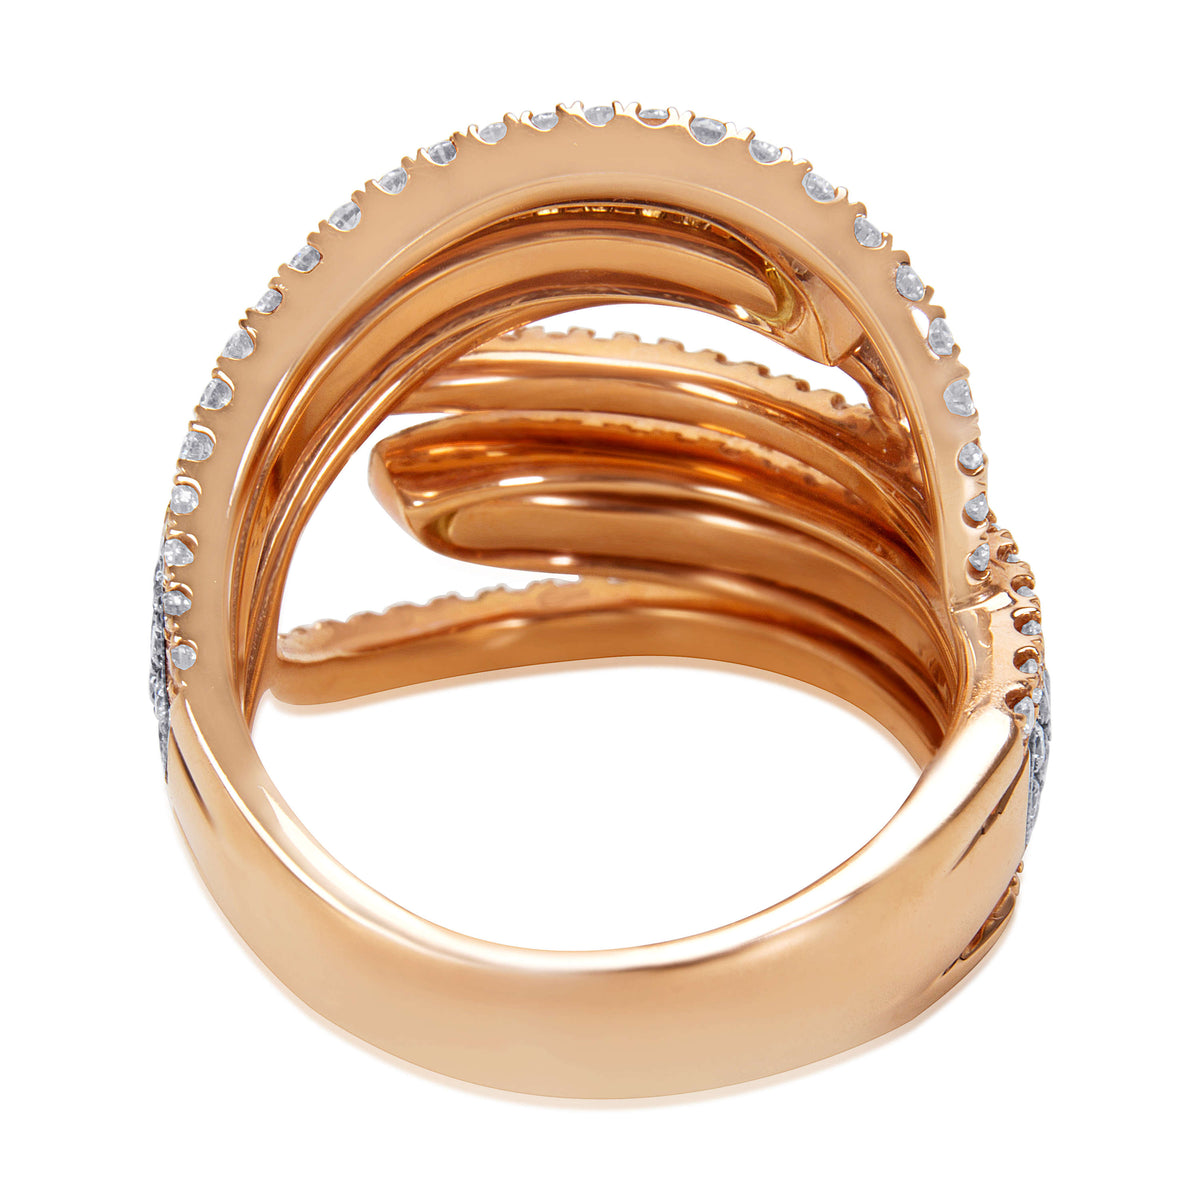 BRAND NEW Diamond Fashion Ring in 18k Rose Gold (1.79 CTW)